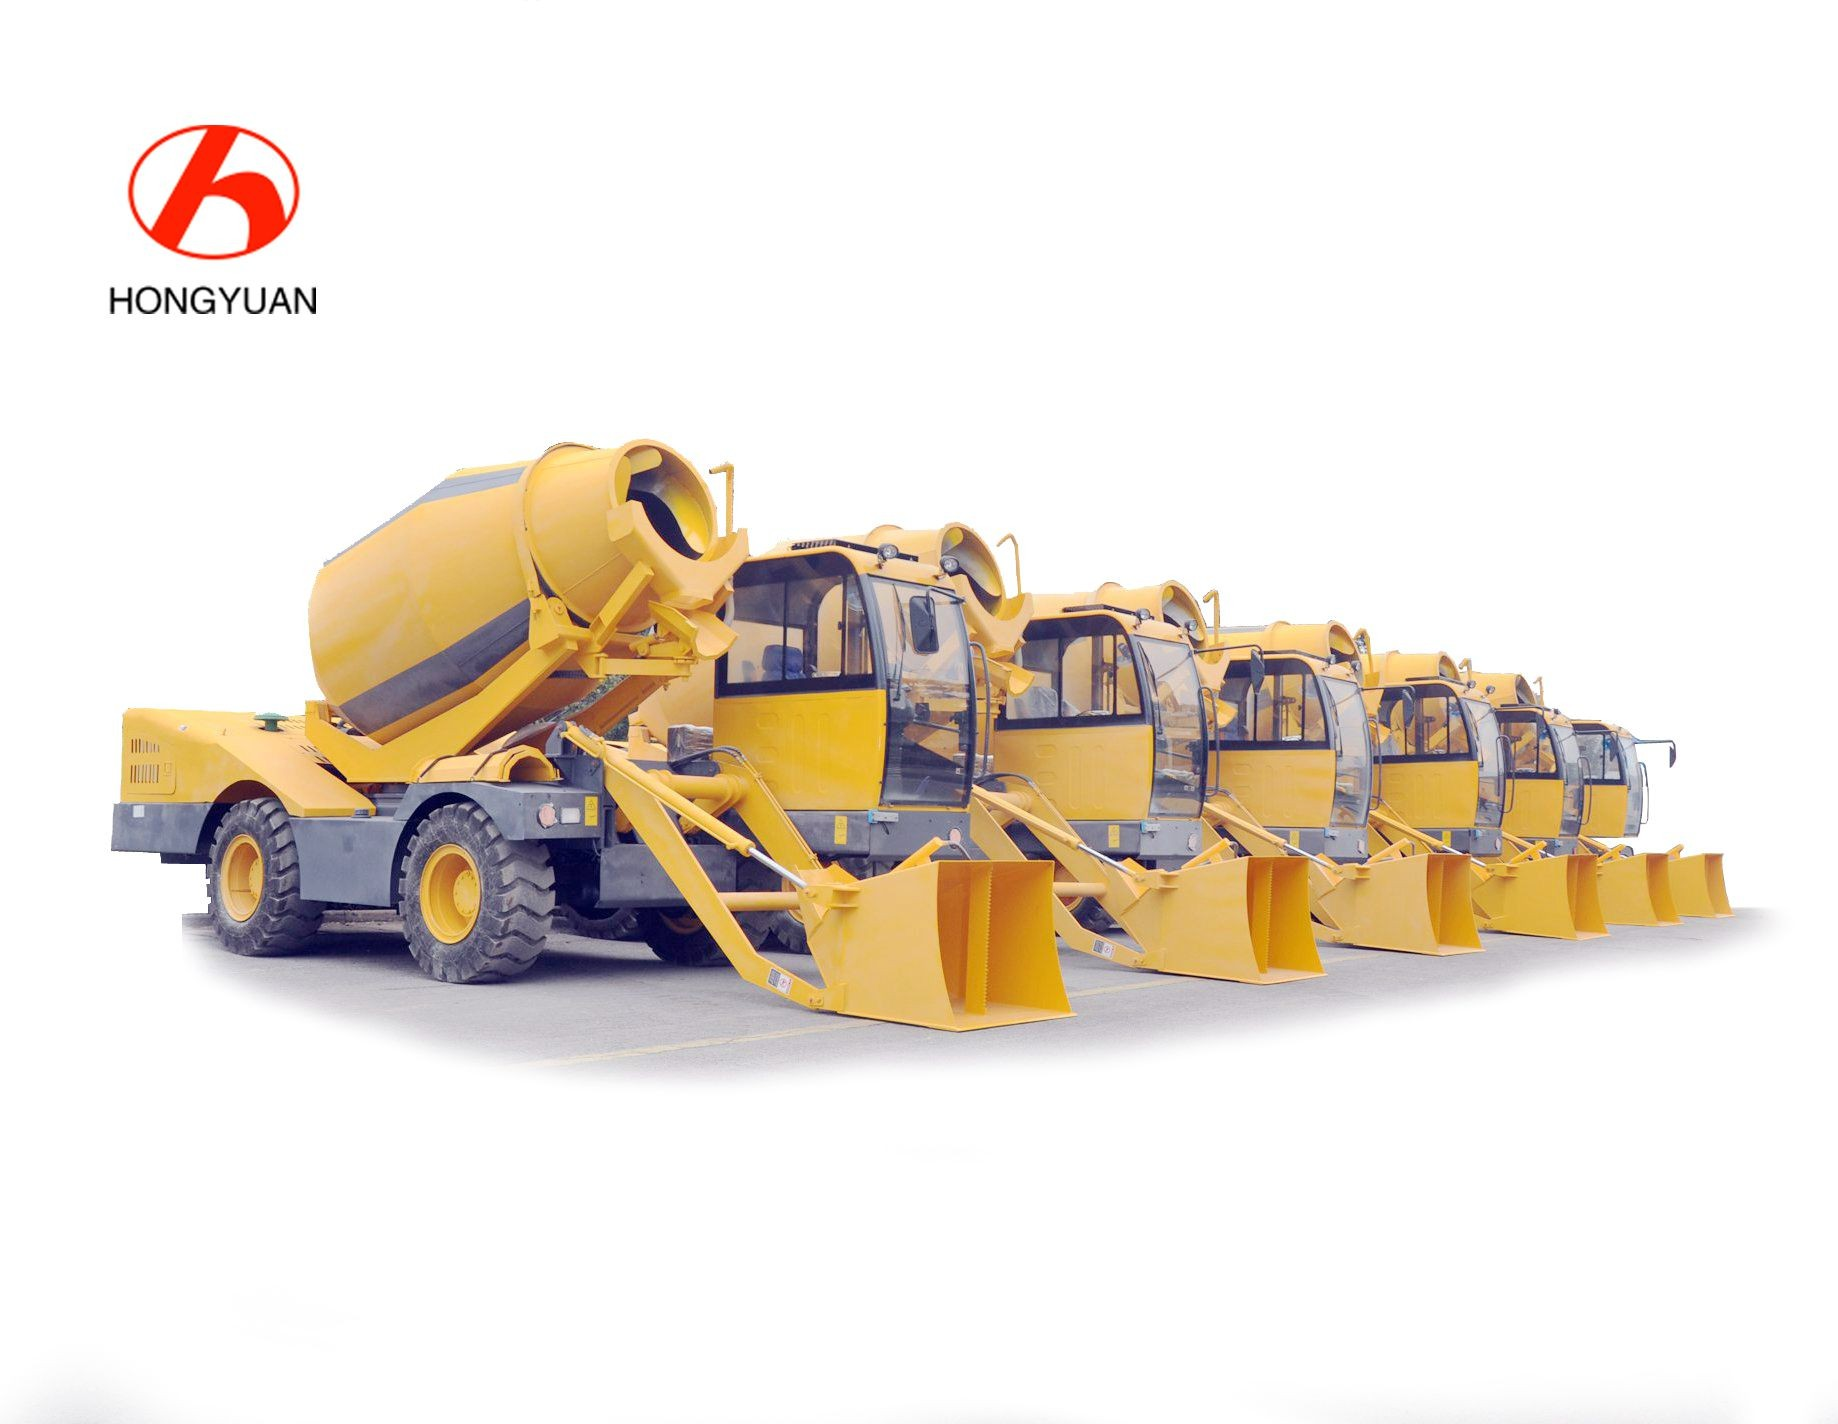 Sales Auto Loading Concrete Mixer Truck With Weighting System, Buy Auto Loading Concrete Mixer Truck With Weighting System, Auto Loading Concrete Mixer Truck With Weighting System Factory, Auto Loading Concrete Mixer Truck With Weighting System Brands